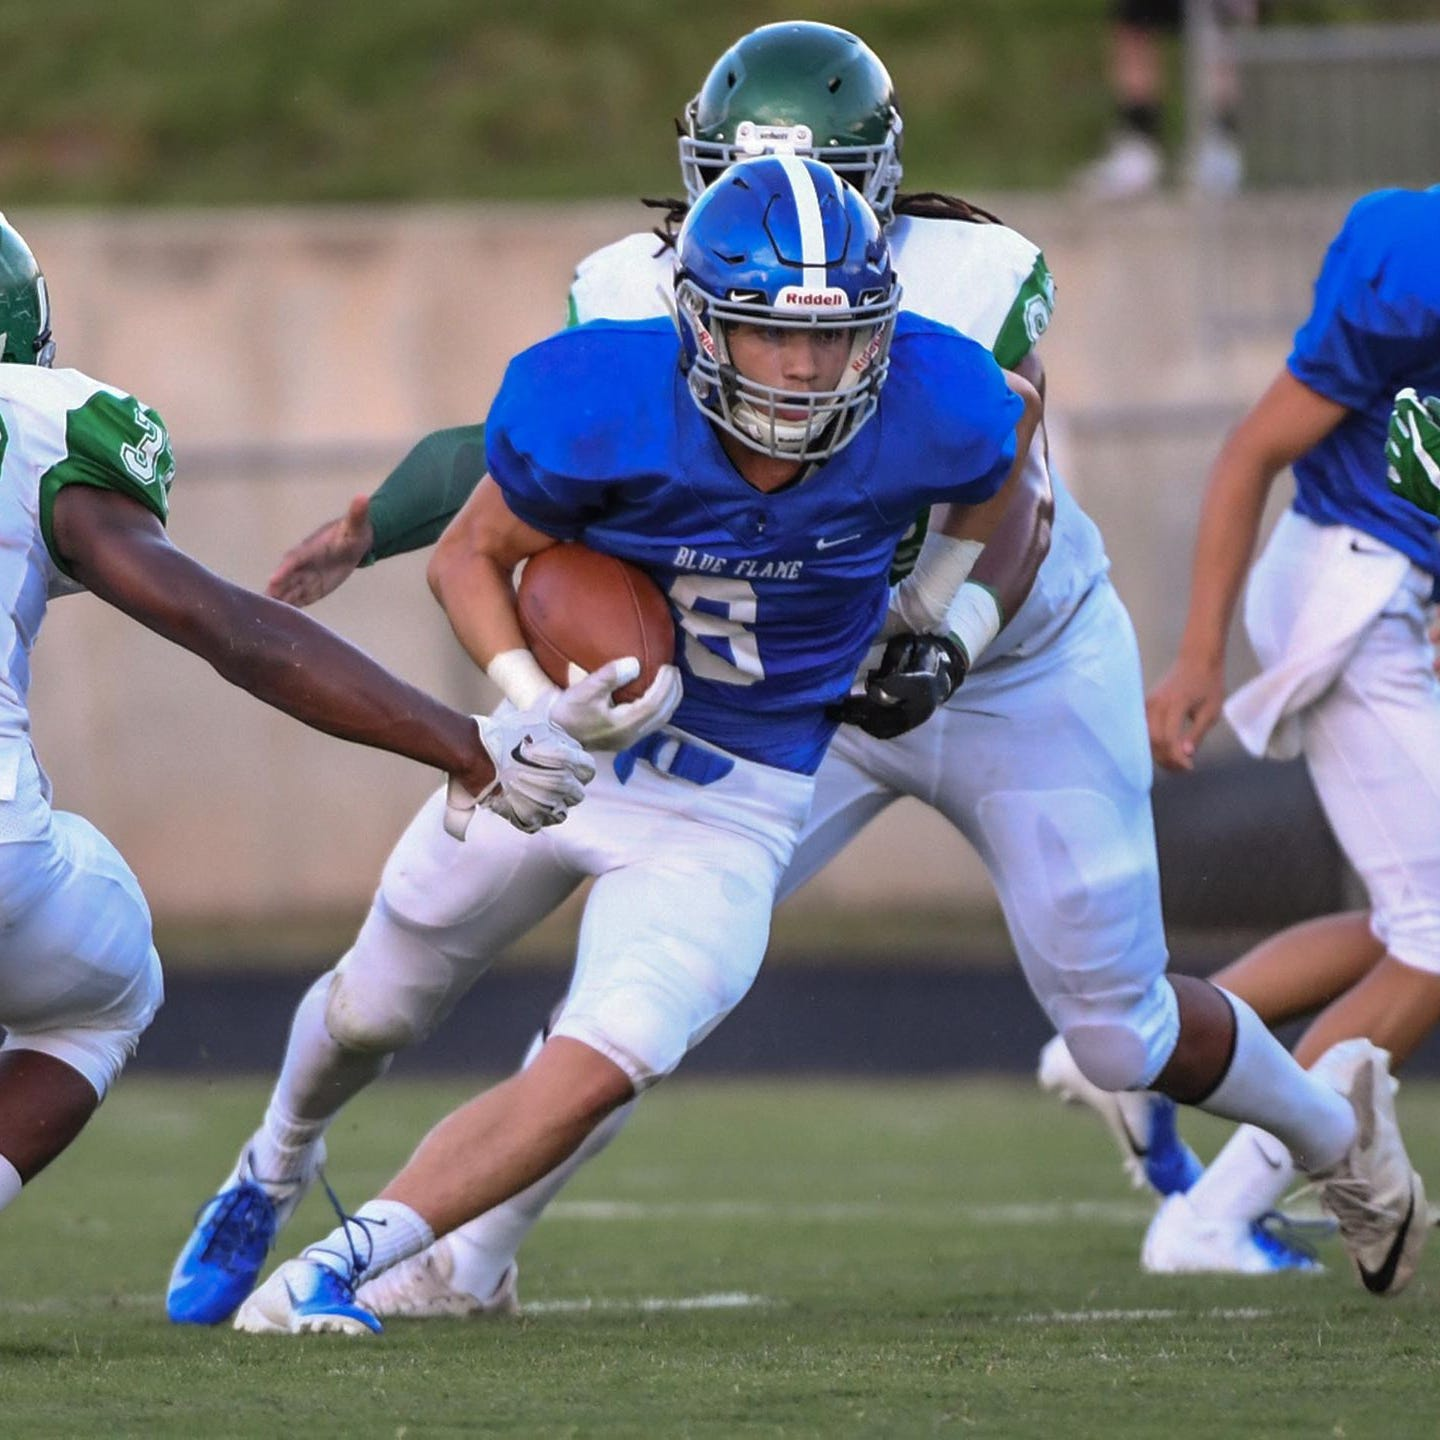 Pickens running back Jarod Barton rushed for 160 yards with two touchdowns in the Blue Flame's 44-13 win over Berea.